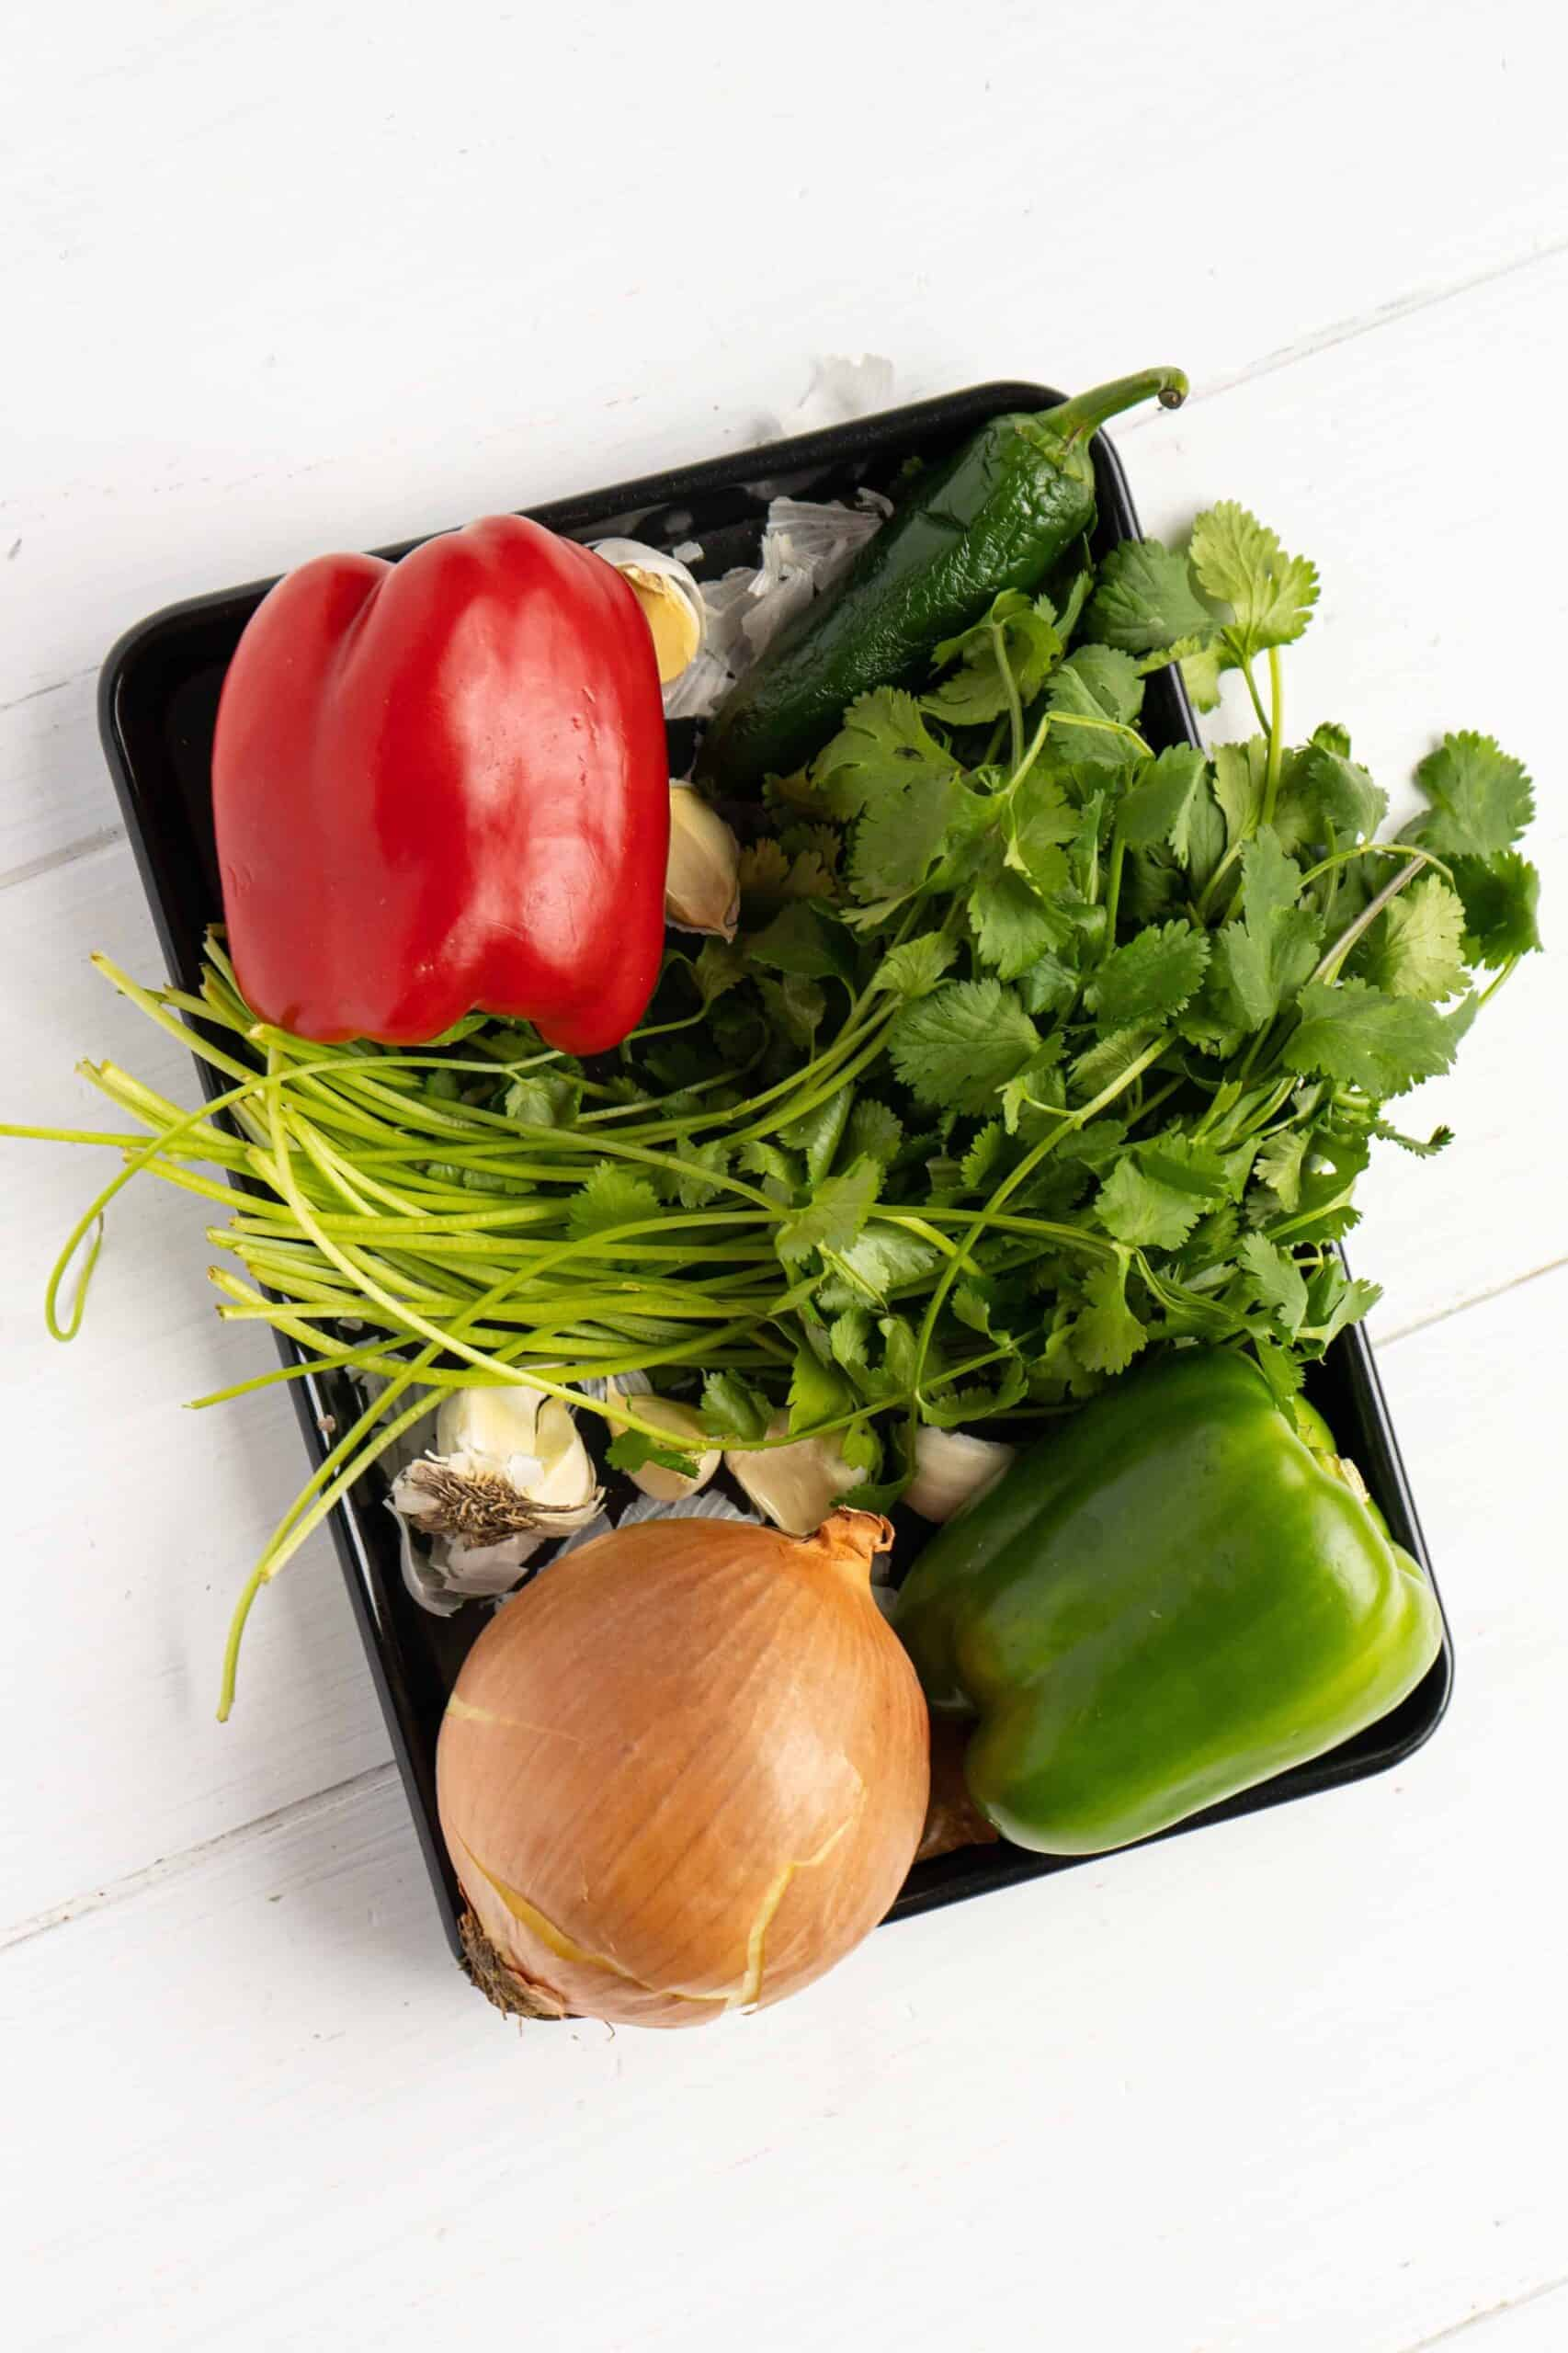 Ingredients for Puerto Rican Sofrito.